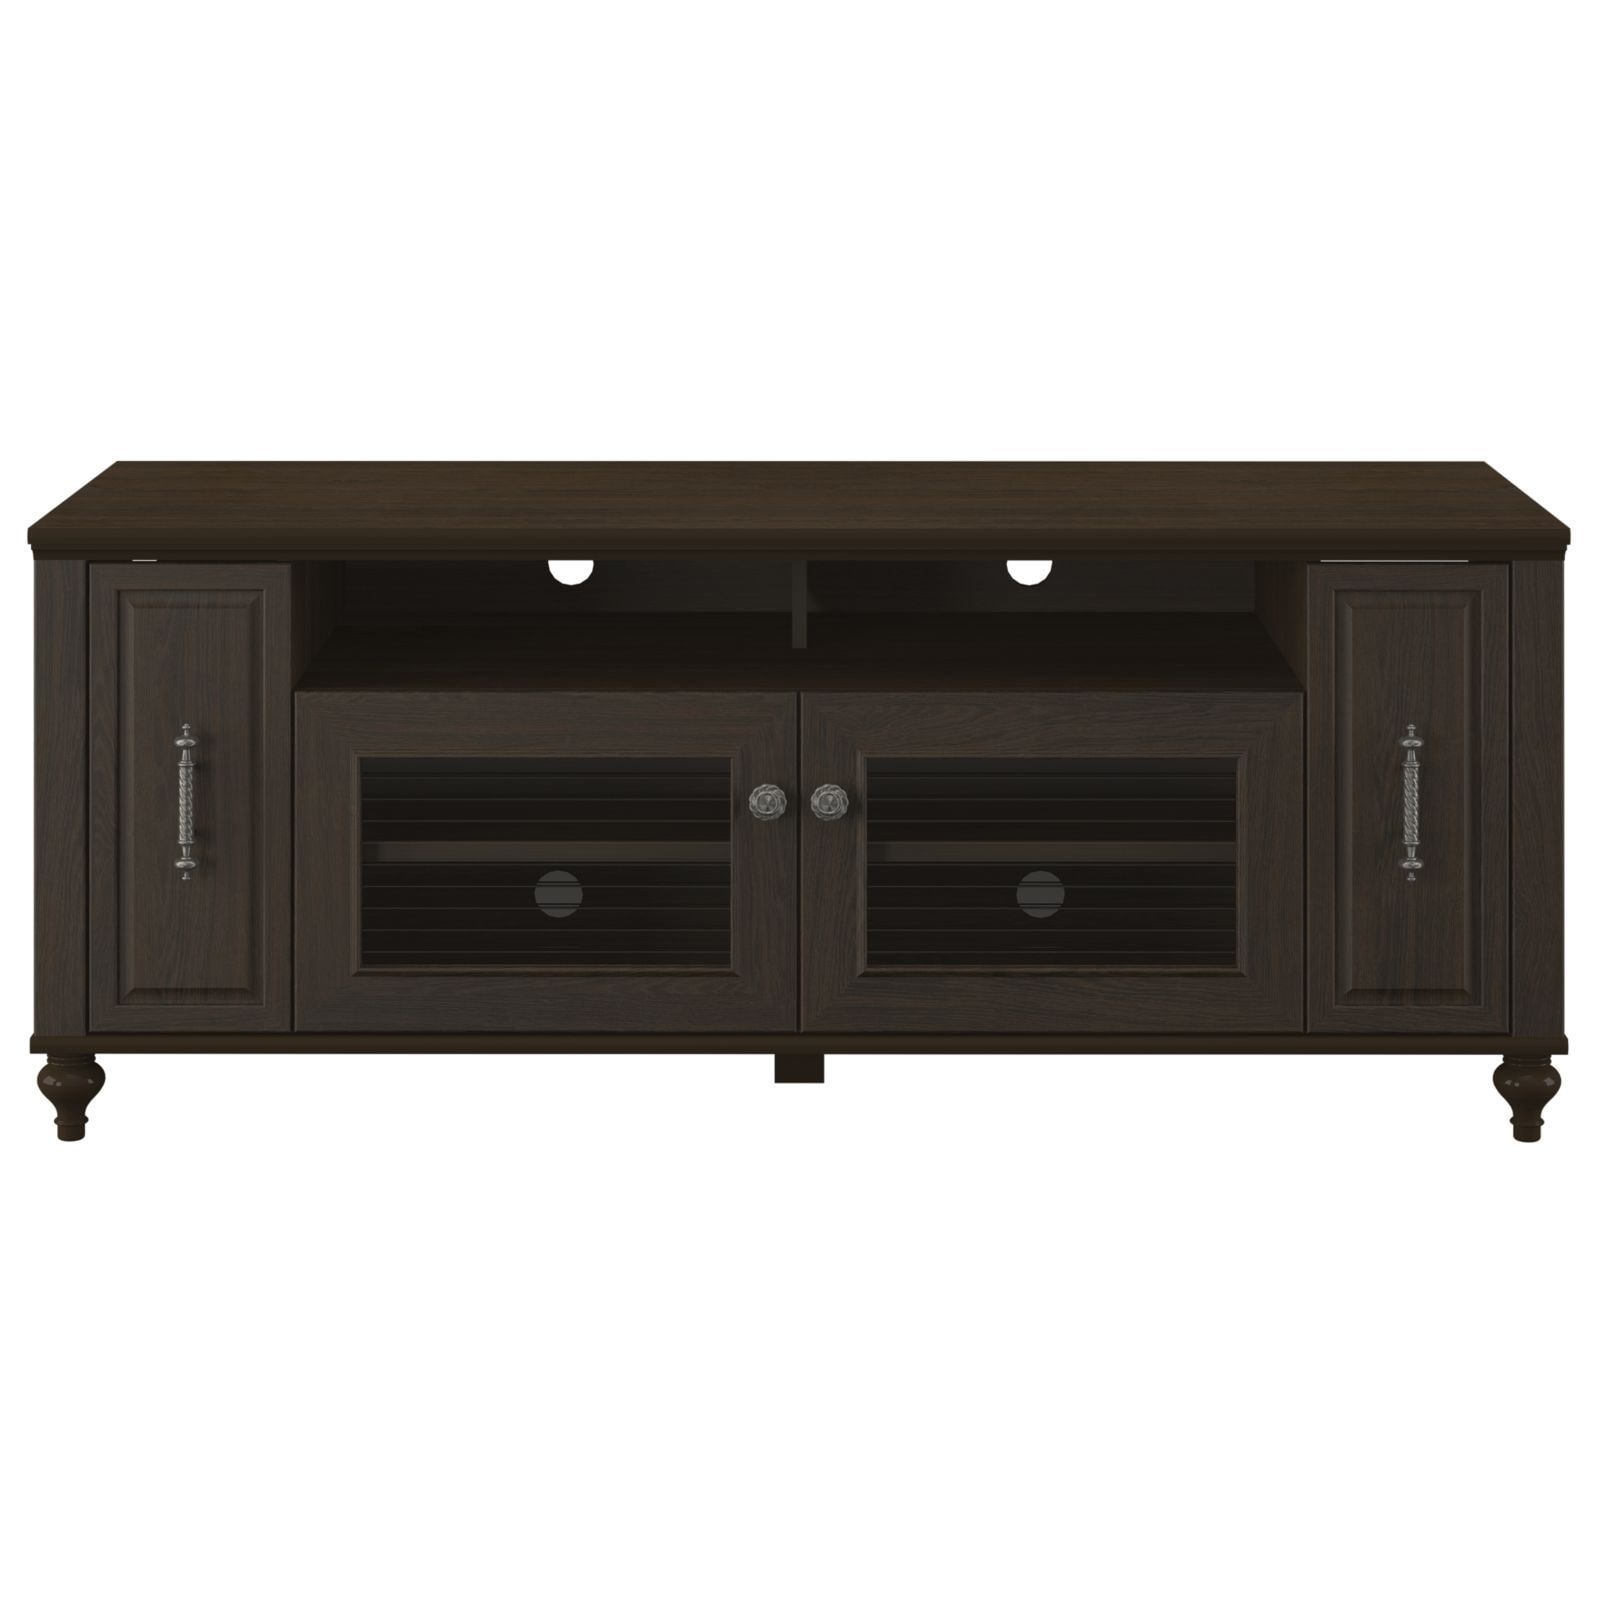 Kathy Ireland Office By Bush Furniture Volcano Dusk Tv Stand Overstock Shopping Great Deals